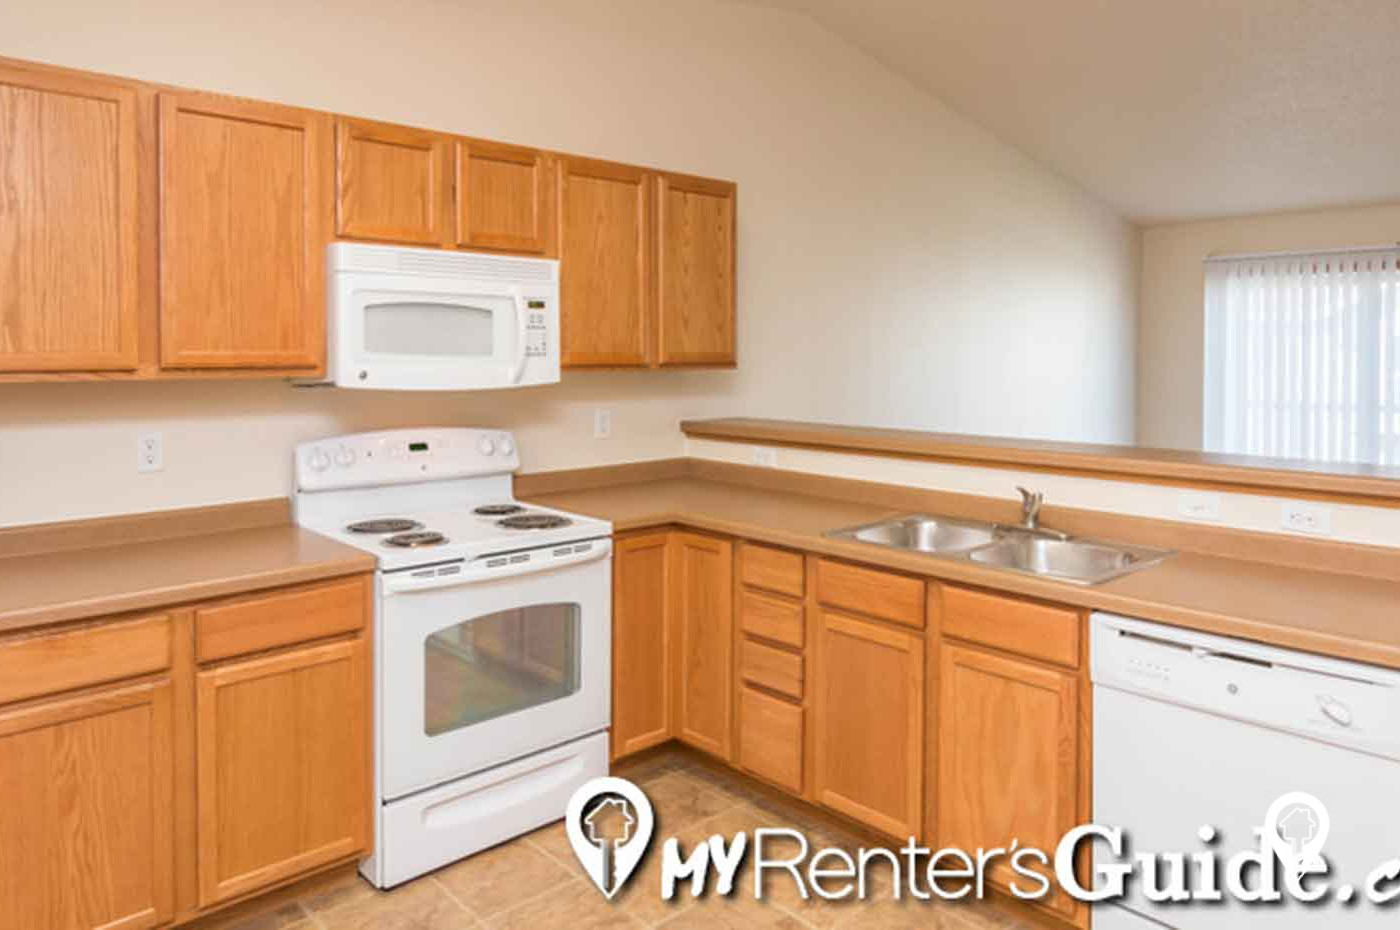 Calico Apartments In Fargo Nd My Renters Guide